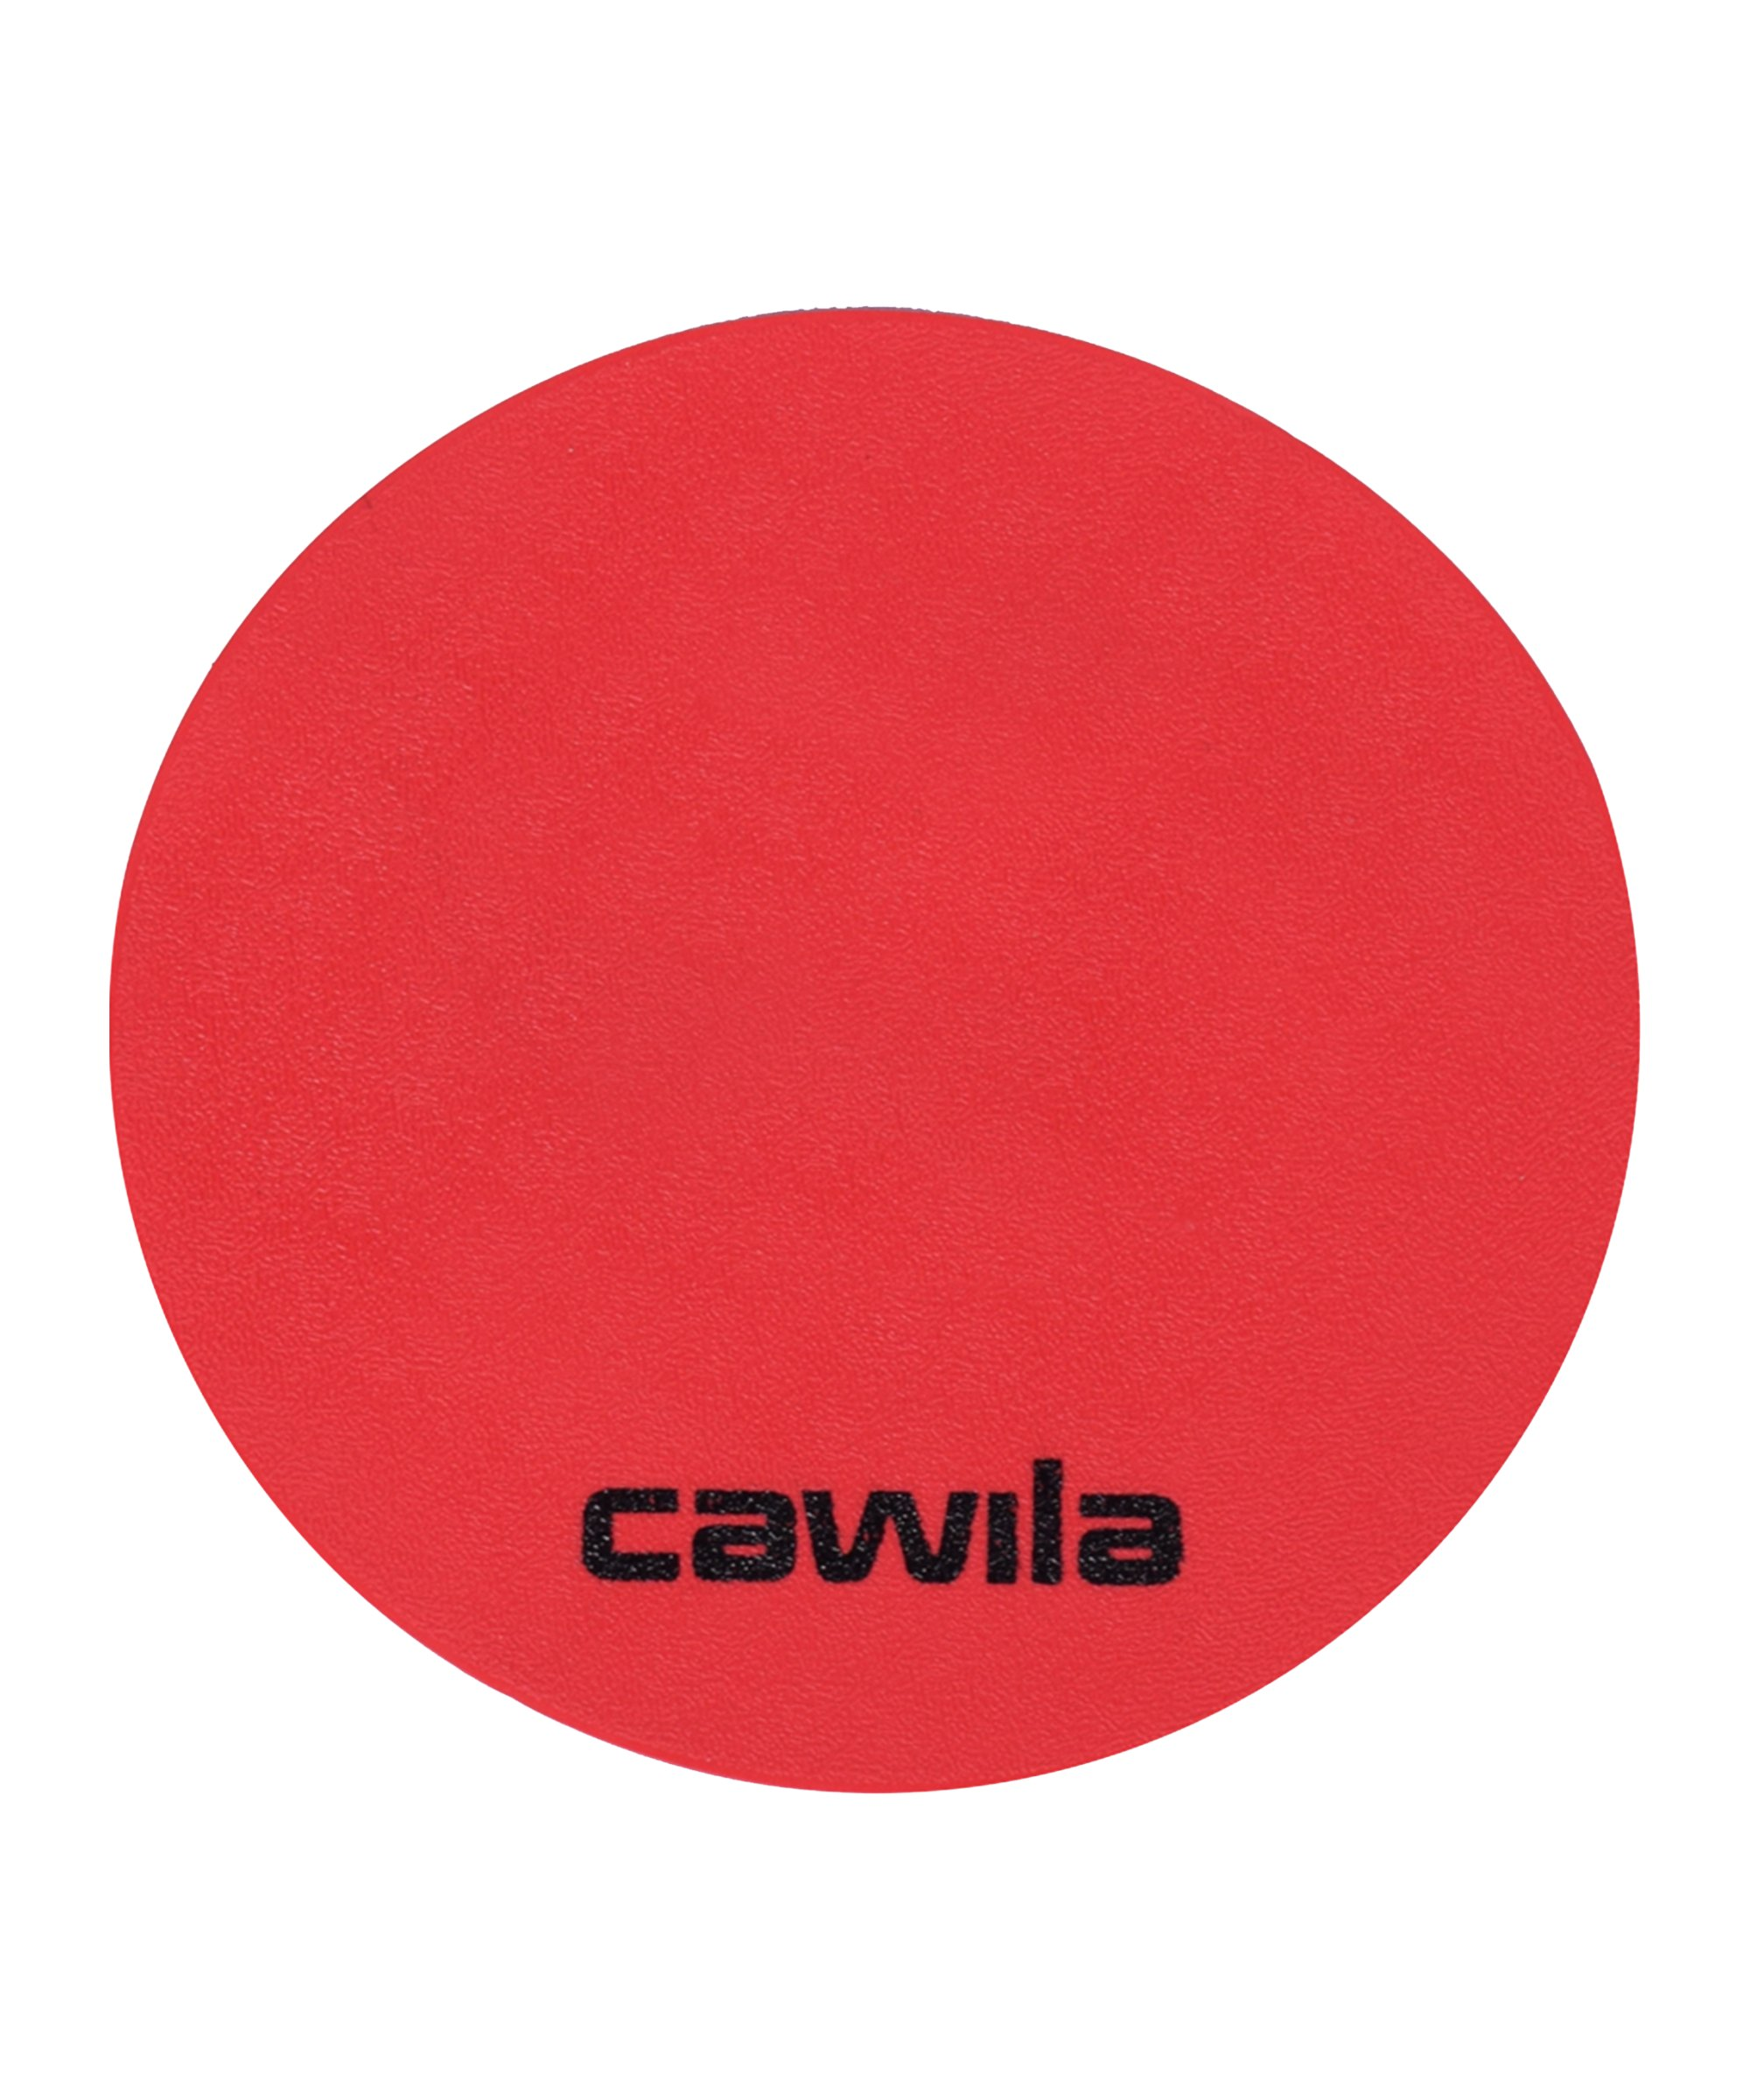 Cawila Marker-System Scheibe d255mm Rot - rot